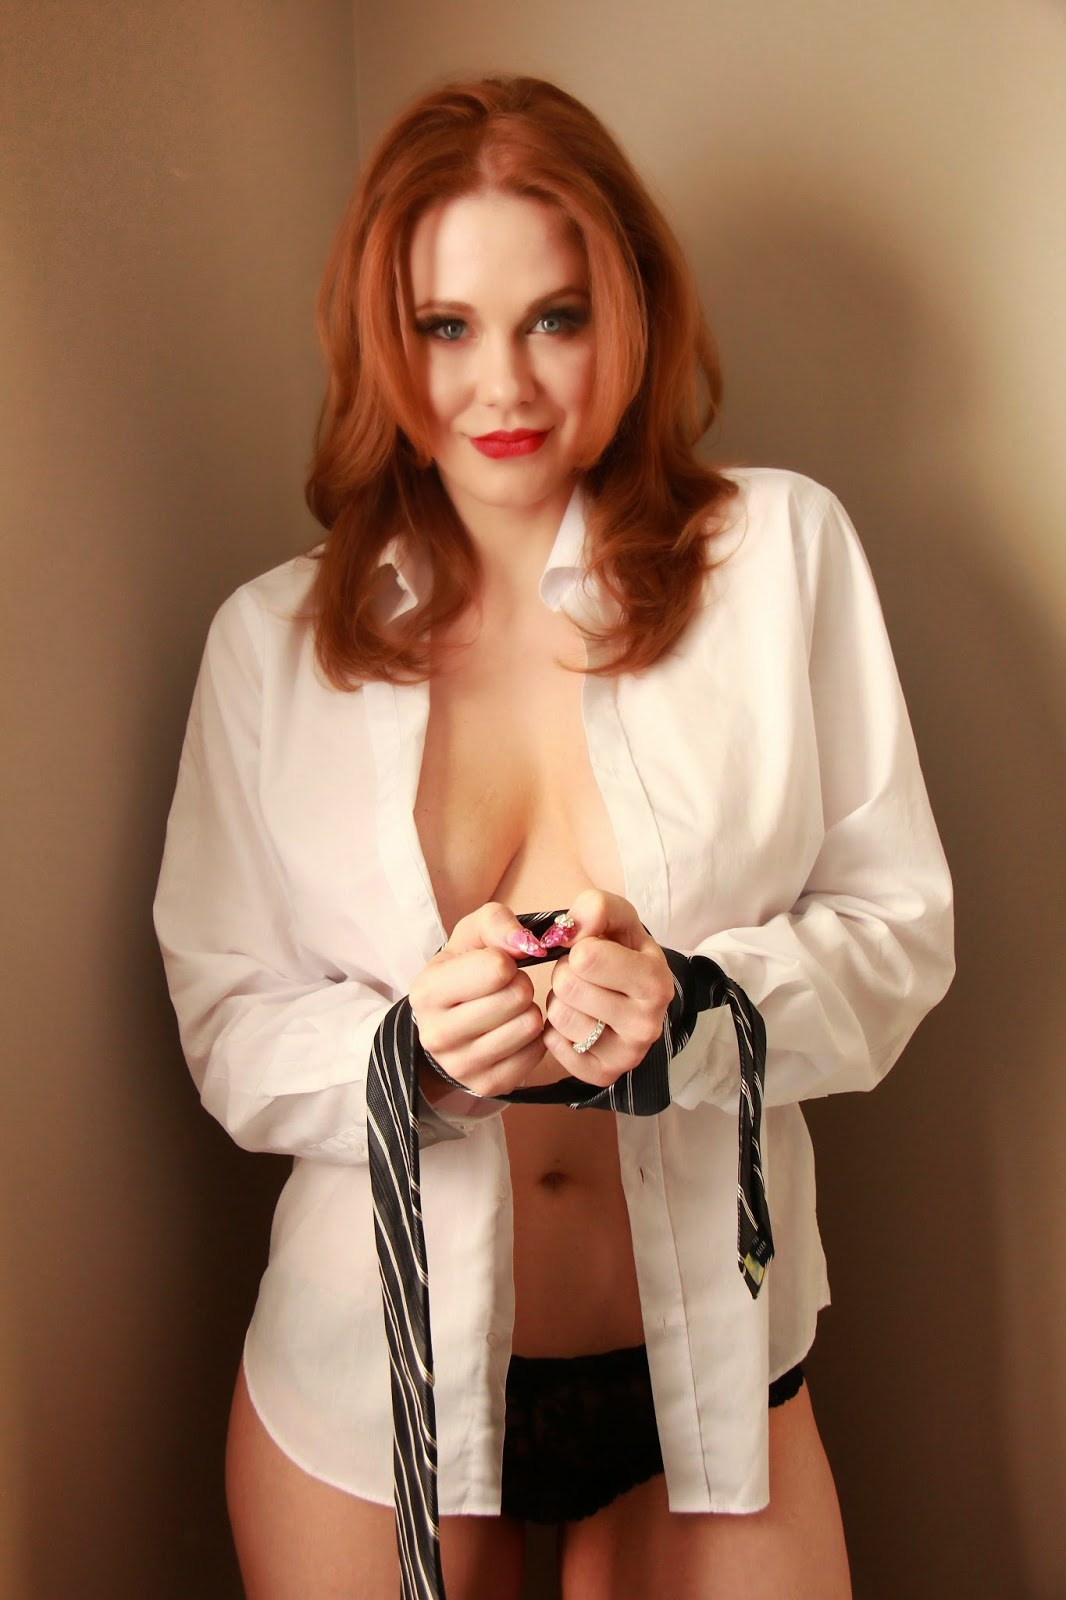 Maitland Ward - sexy white blouse and tie - Satin Lite House